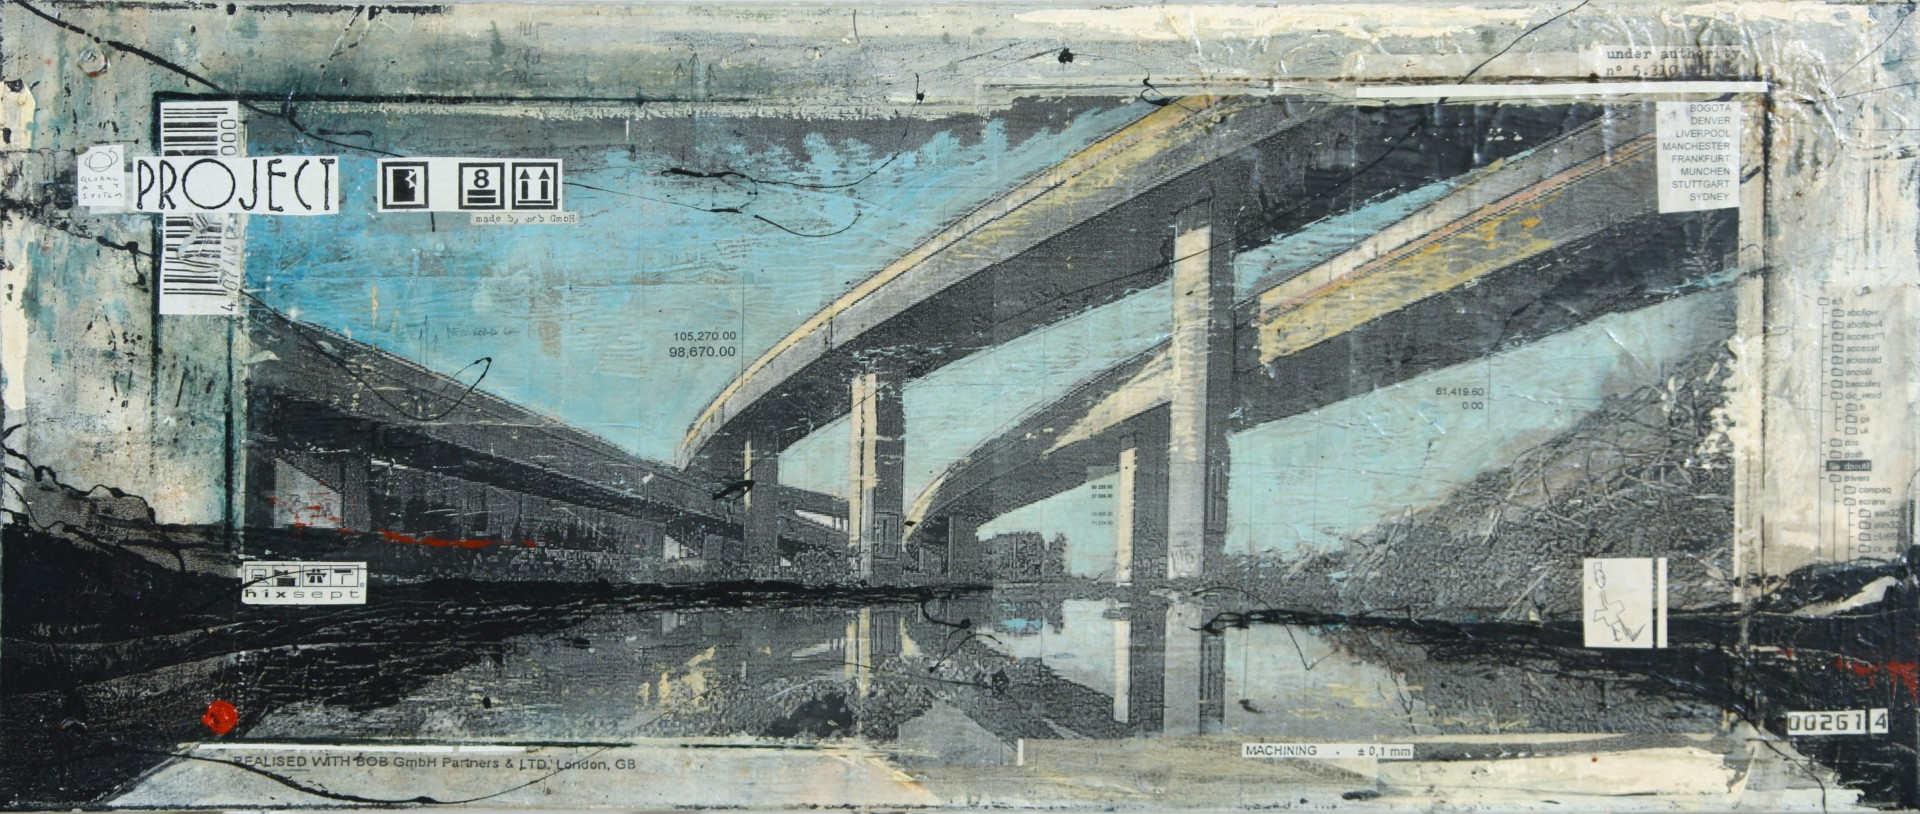 Interchanges - Montreal (CDN) - collage photo, huile, acrylique sur toile - 60 x 140 cm - 2010